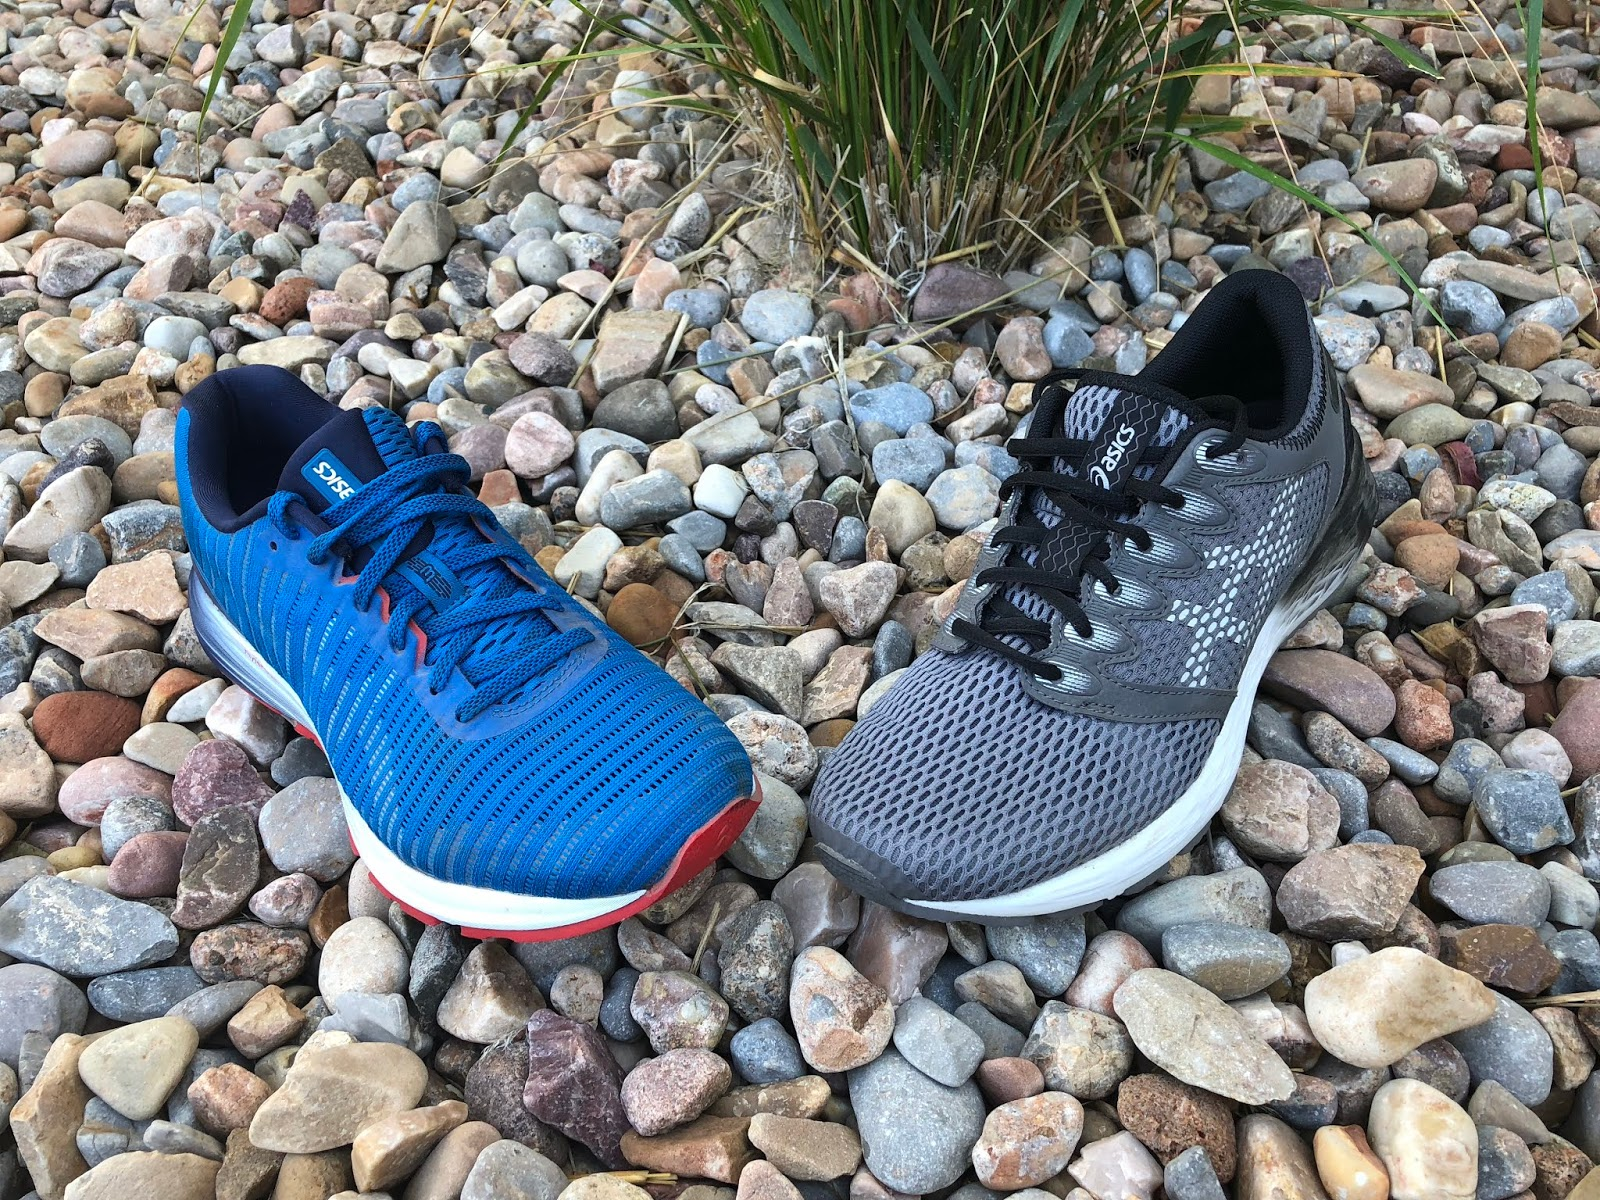 Abolido Claire Cardenal  Road Trail Run: ASICS DynaFlyte 3 and Roadhawk FF 2 Comparative Review:  More Room or More Response?